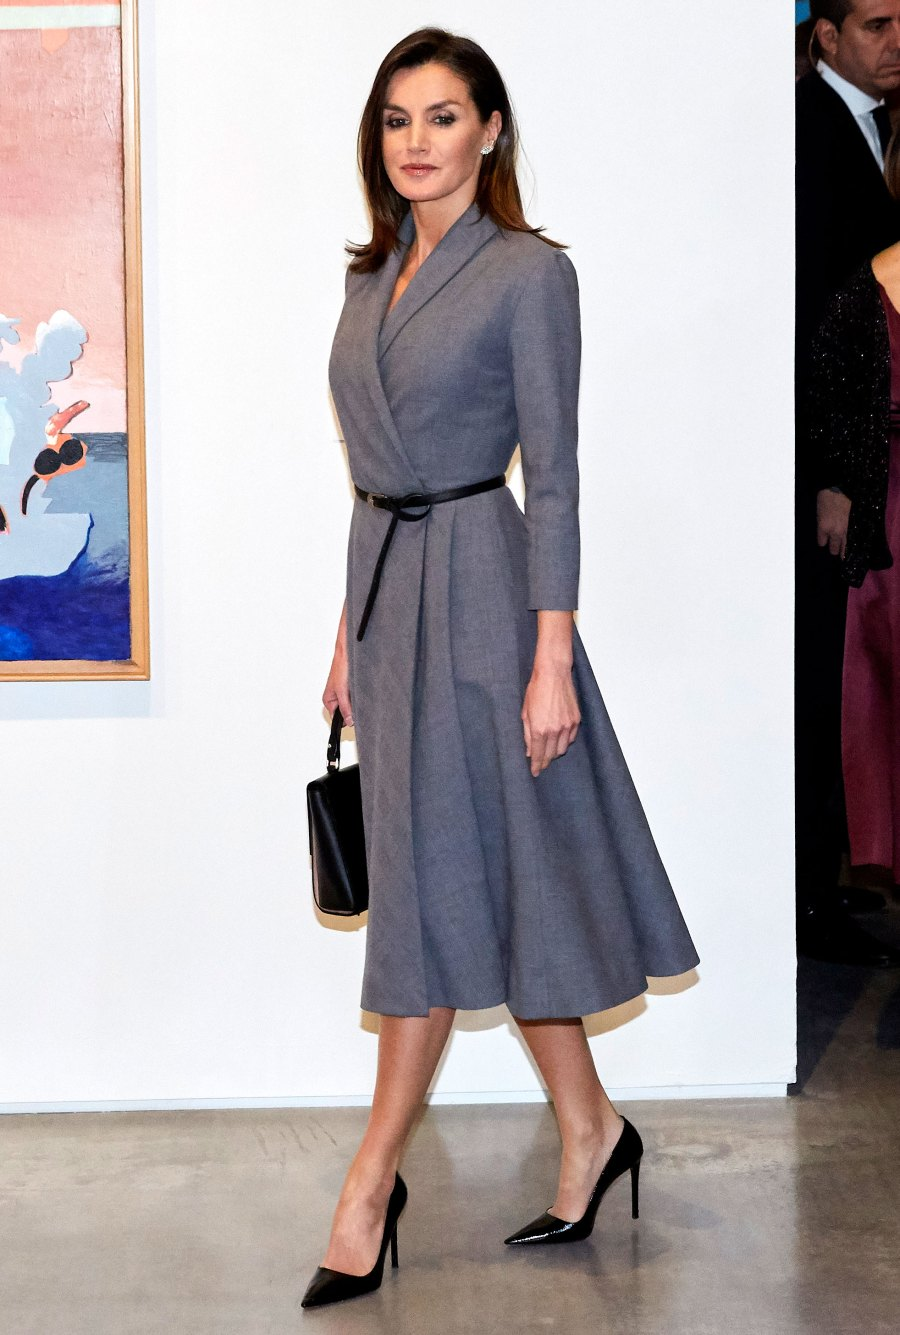 Queen-Letizia-Ortiz-of-Spain-gray-dress